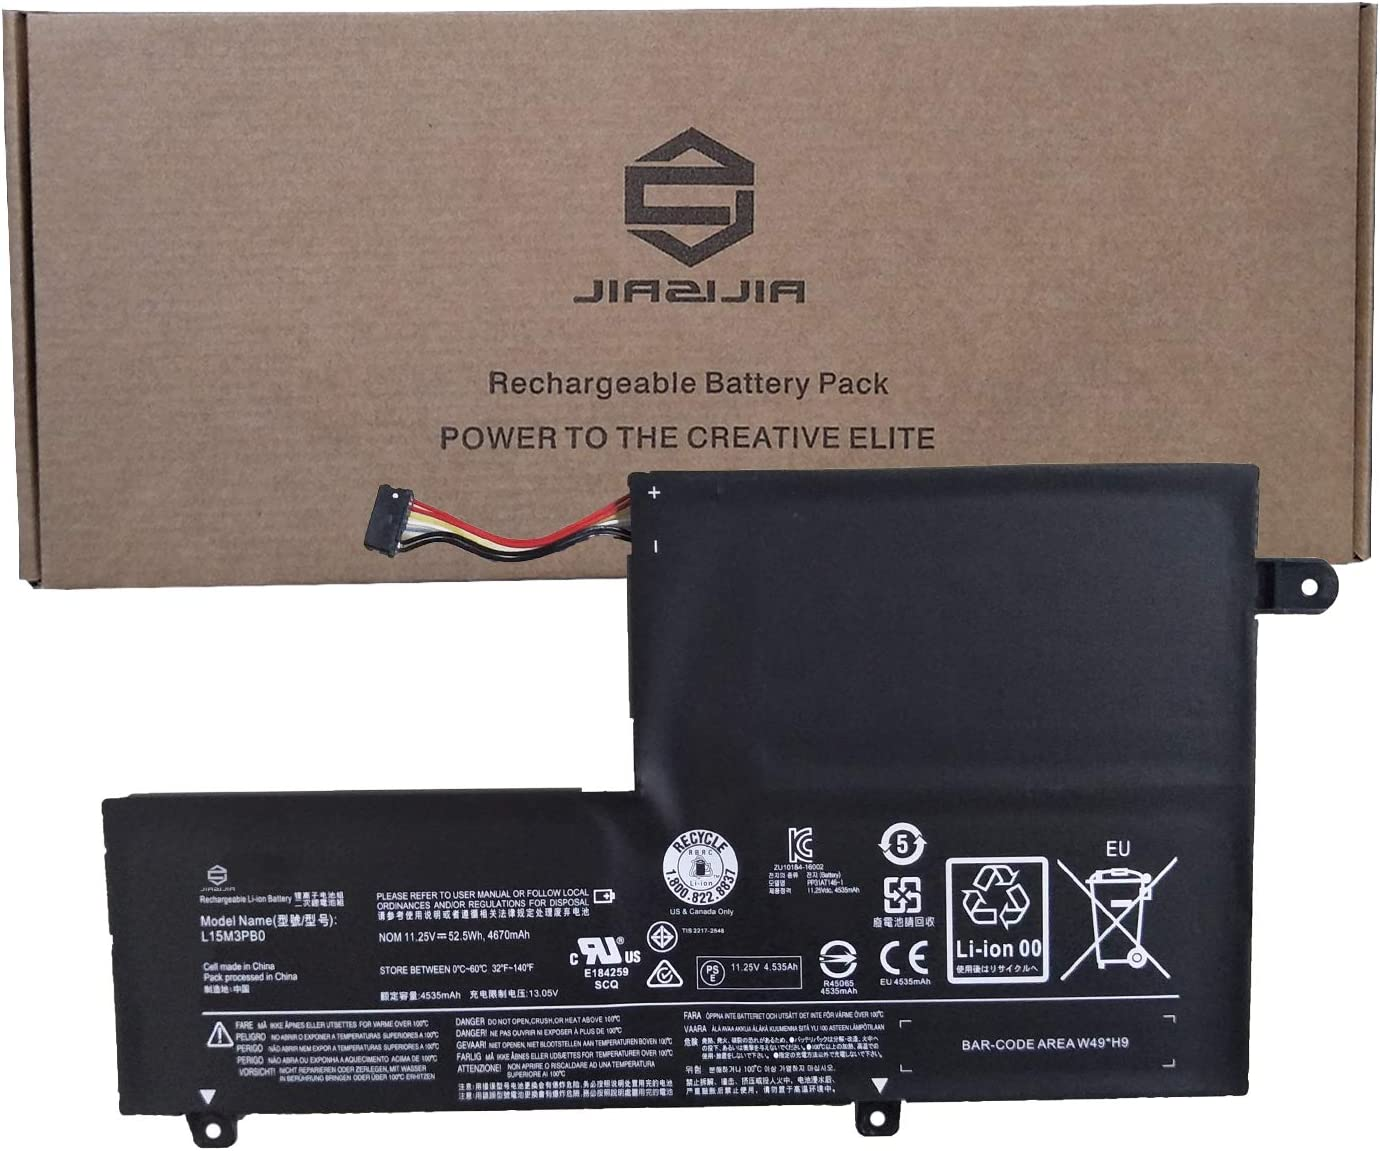 Max 50% OFF Genuine JIAZIJIA L15M3PB0 Type-C Laptop Battery Lenovo Replacement for F